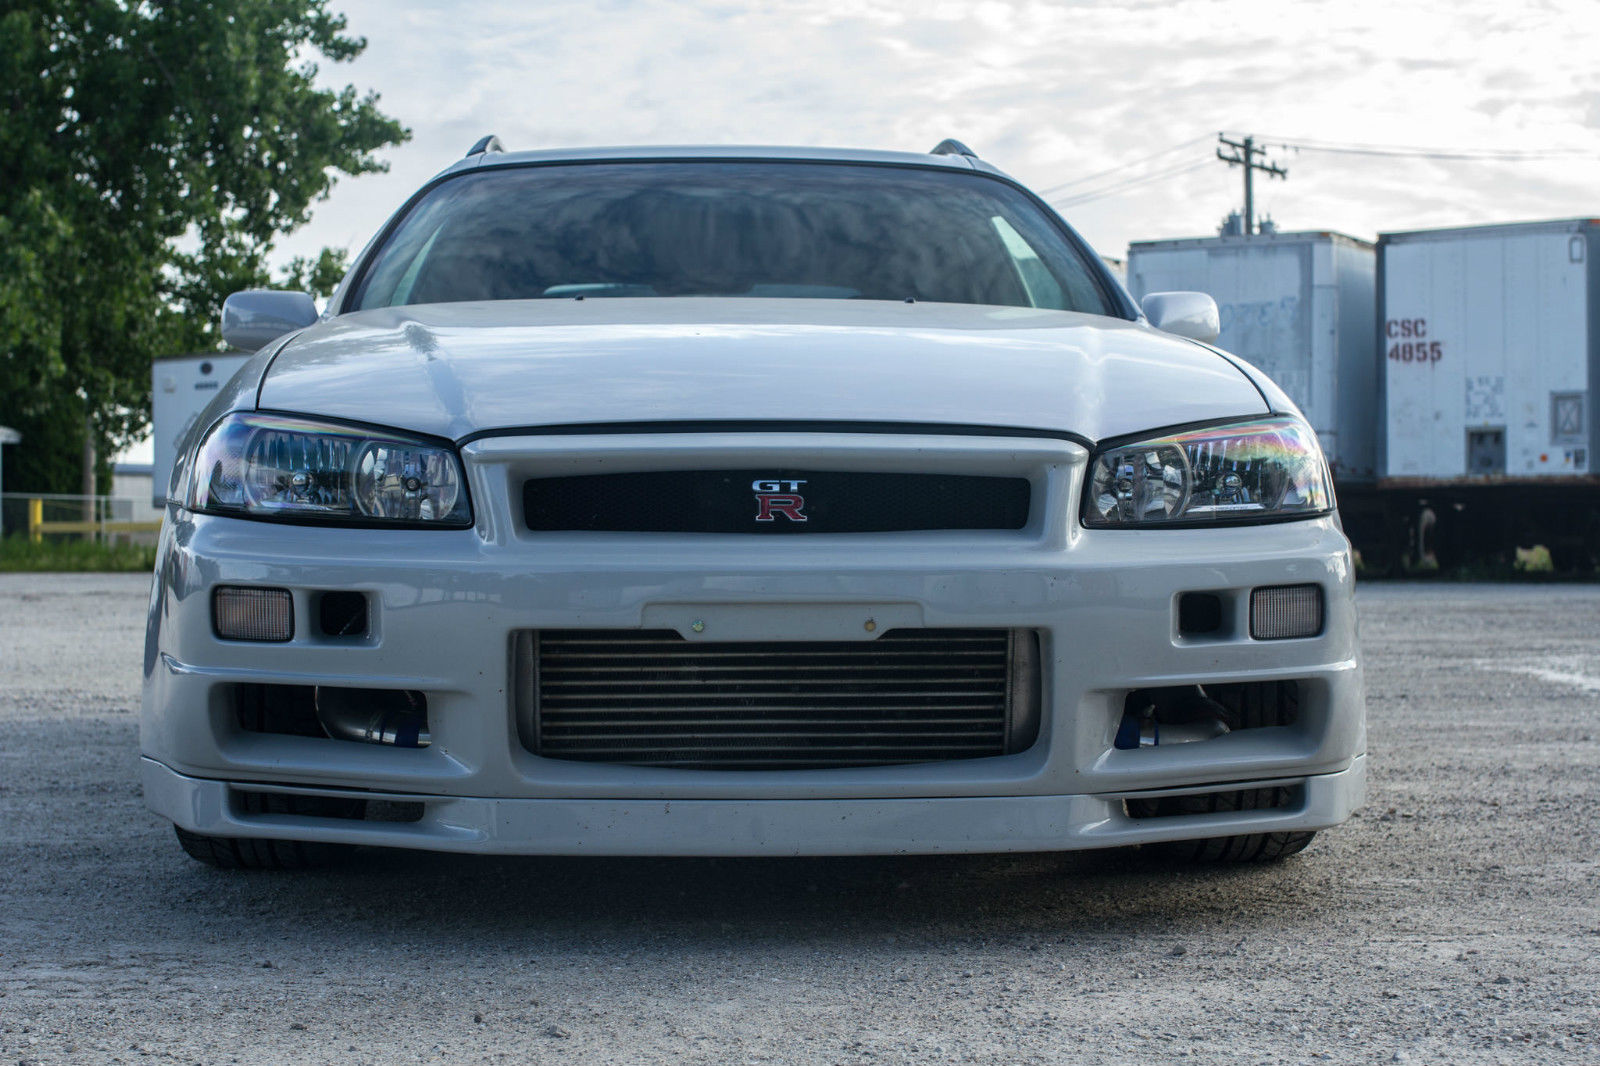 Fake R34 Nisan GT-R Wagon for Sale Is Based on JDM Stagea ...